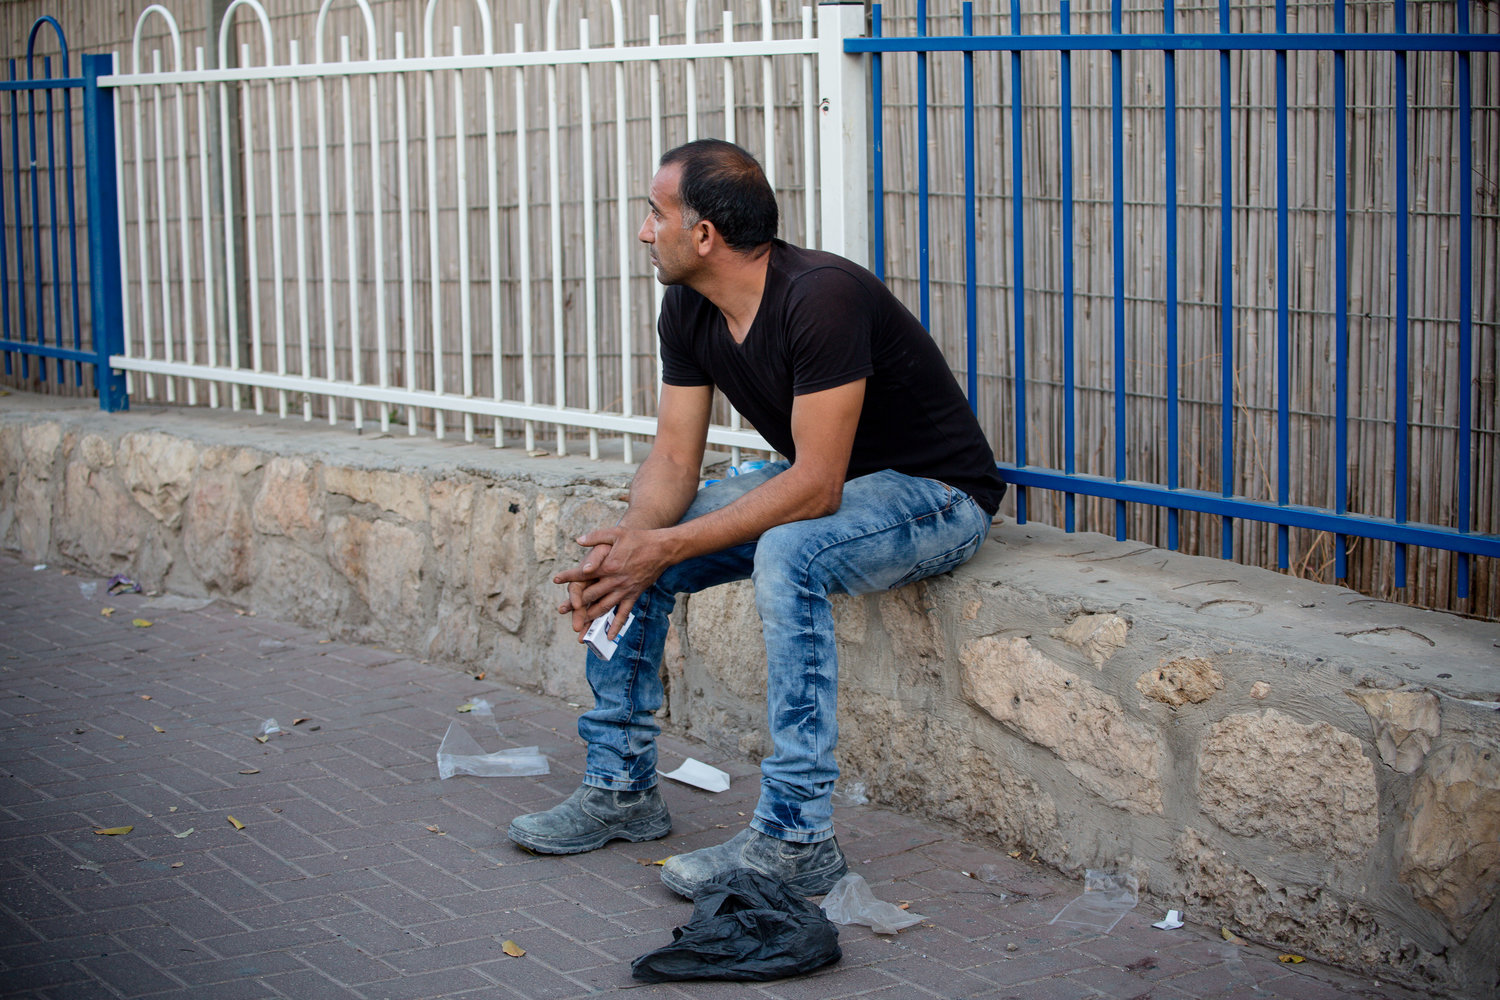 A Palestinian man waits at Checkpoint 300.